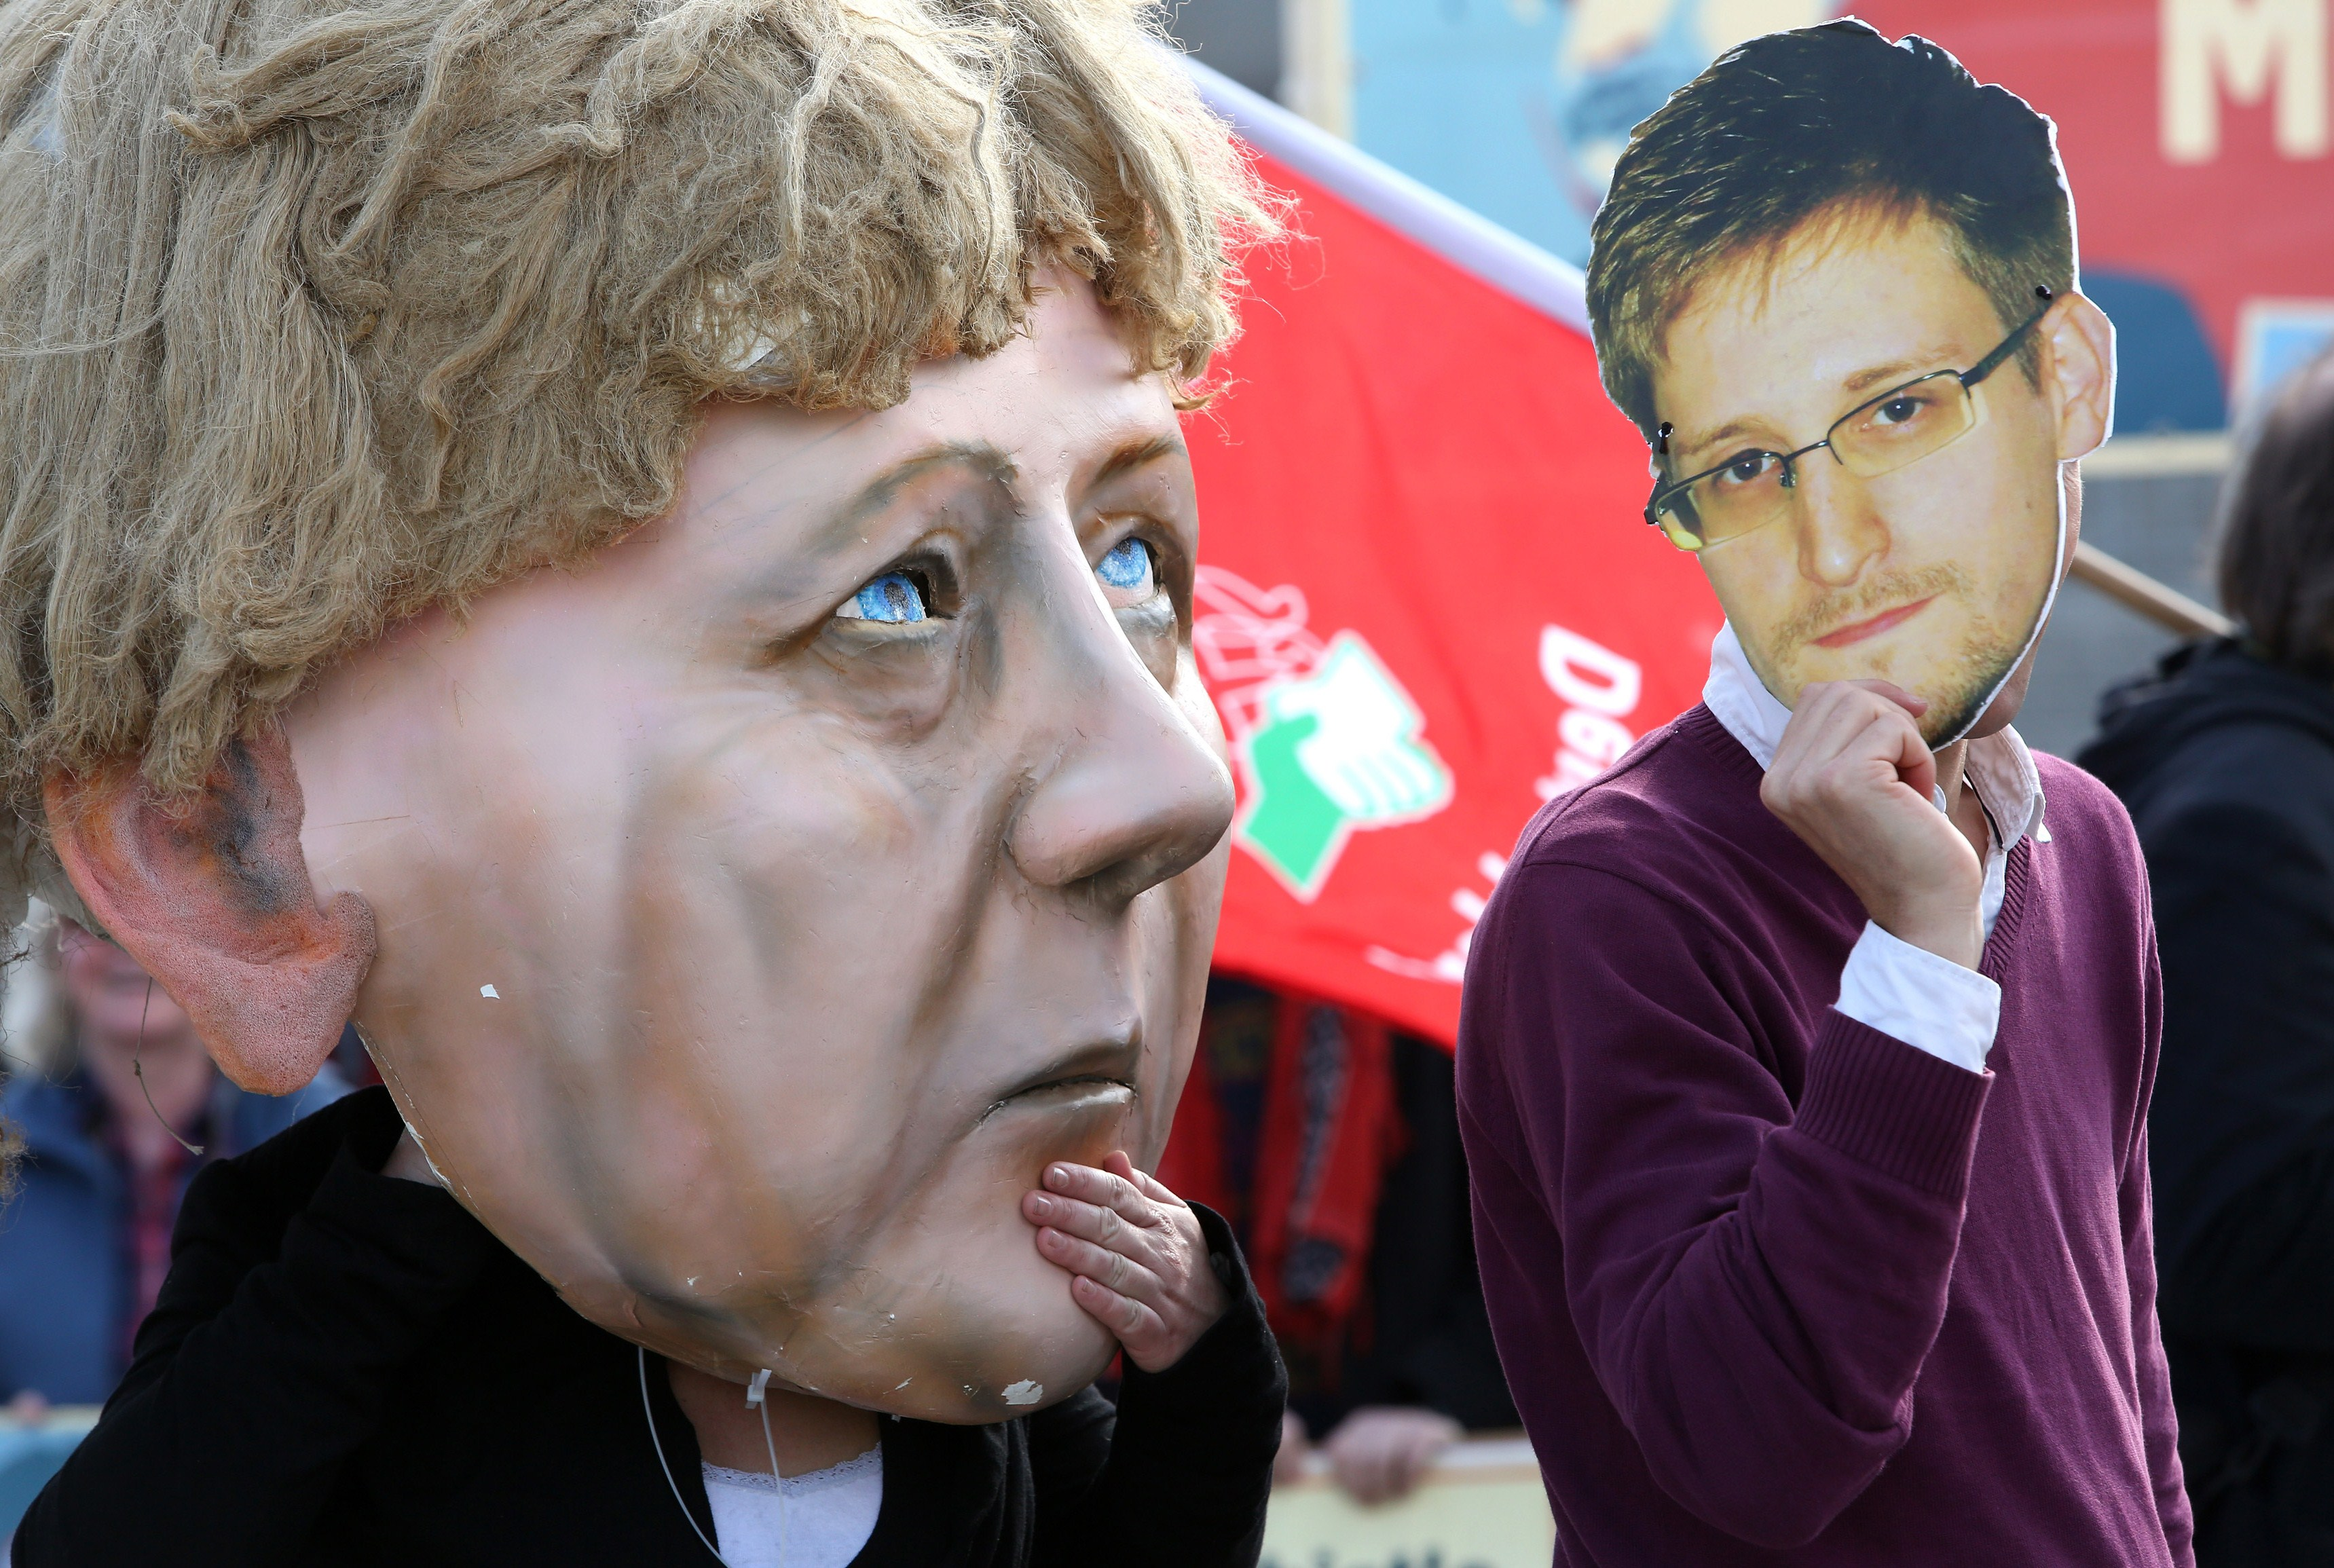 Activists wearing a mask of fugitive U.S. intelligence leaker Edward Snowden (R) and of German Chancellor Angela Merkel take part in a demonstration in favor of an appearance by Snowden as a witness in German NSA hearings held in the German Bundestag, or lower house of parliament, outside the Reichstag building in Berlin on May 8, 2014.